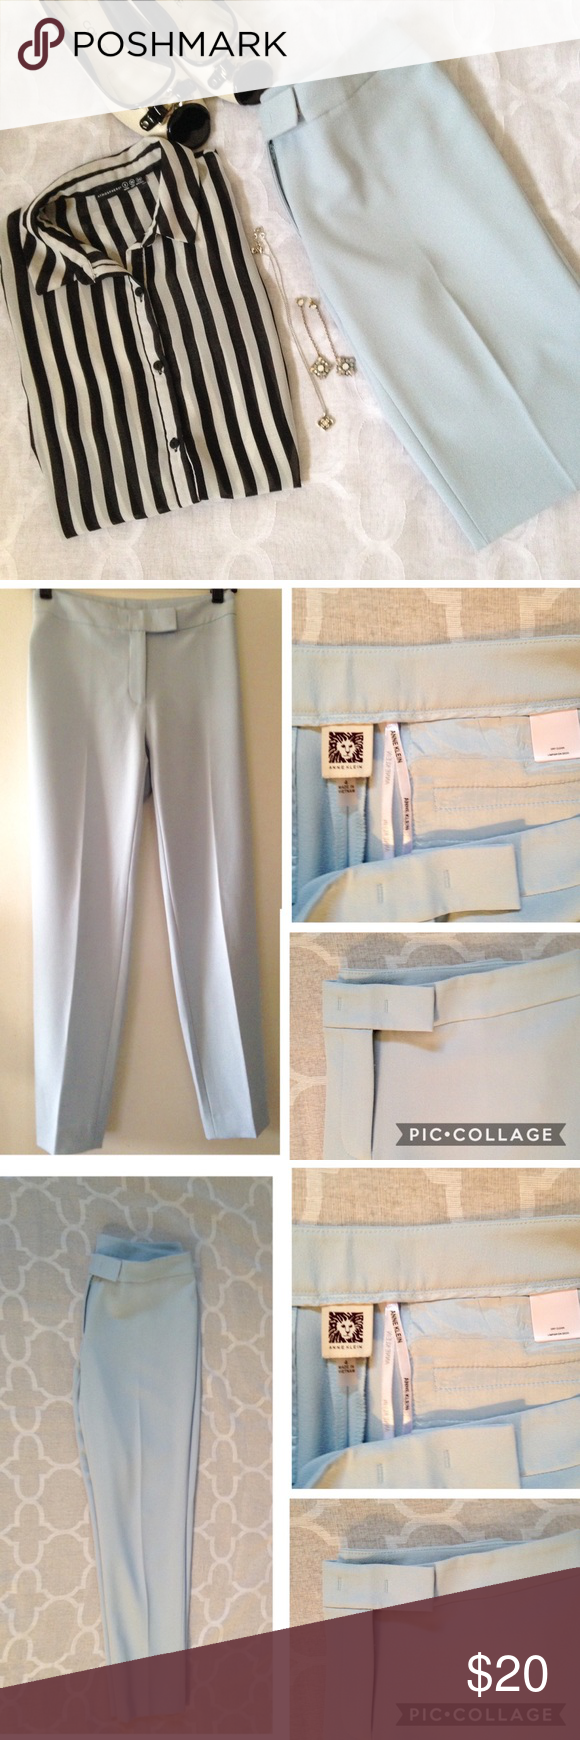 Anne Klein Trouser Beautiful powder blue trouser pant by Anne Klein. Never worn but have no tags. Can be styled a number of different ways. I purchased thinking they would fit but sadly, they didn't. 37 inches long. Anne Klein Pants Trousers